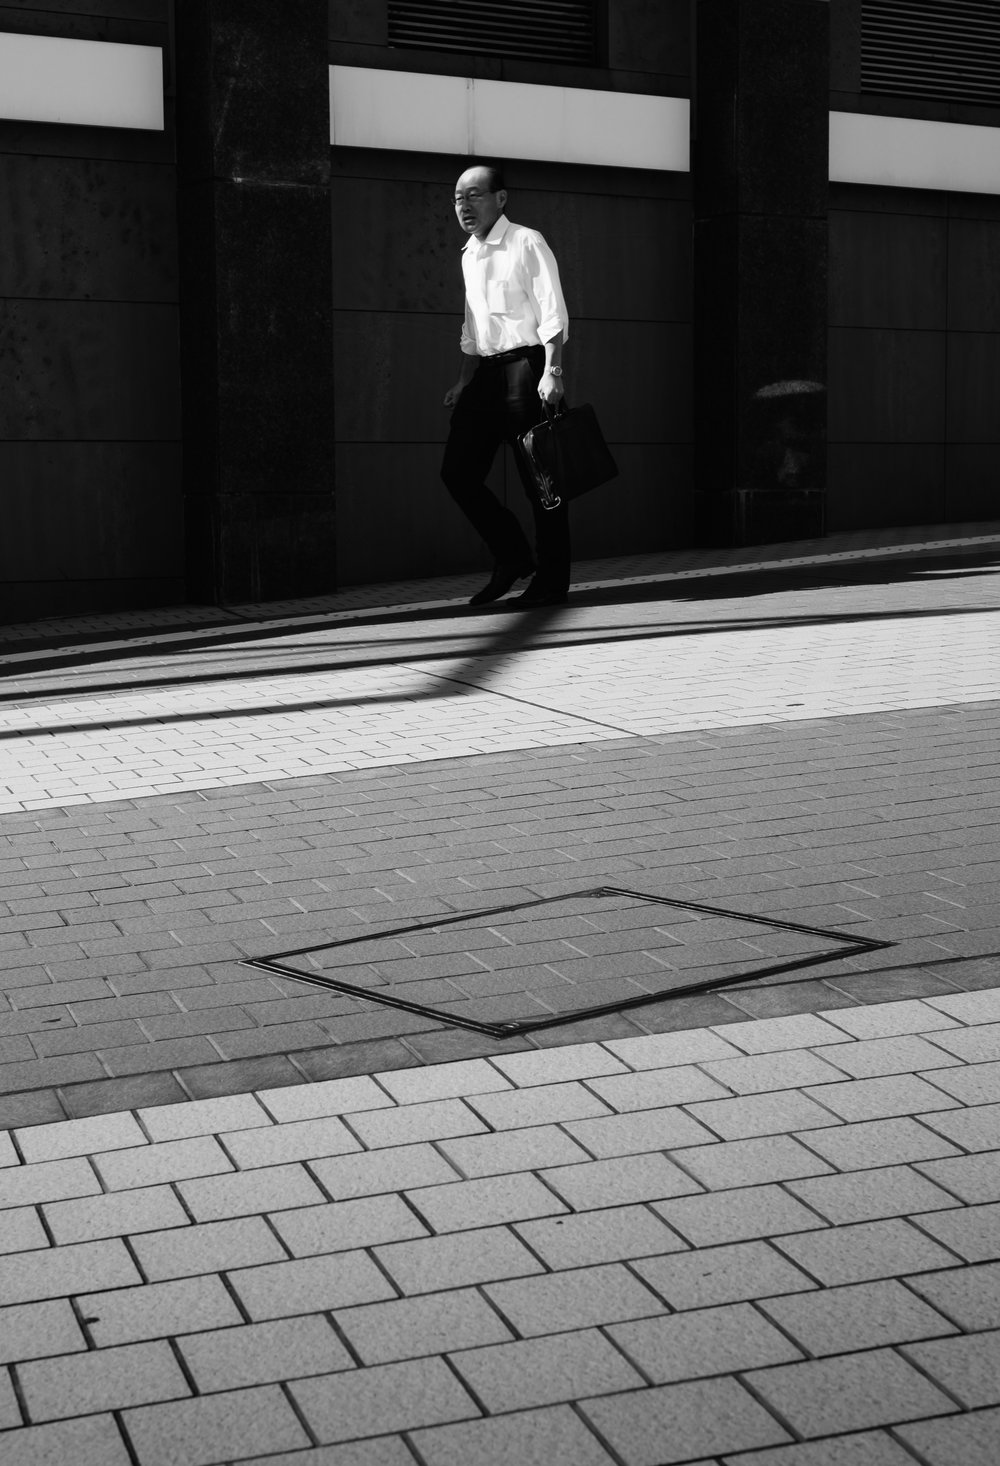 Salary Man Shadows